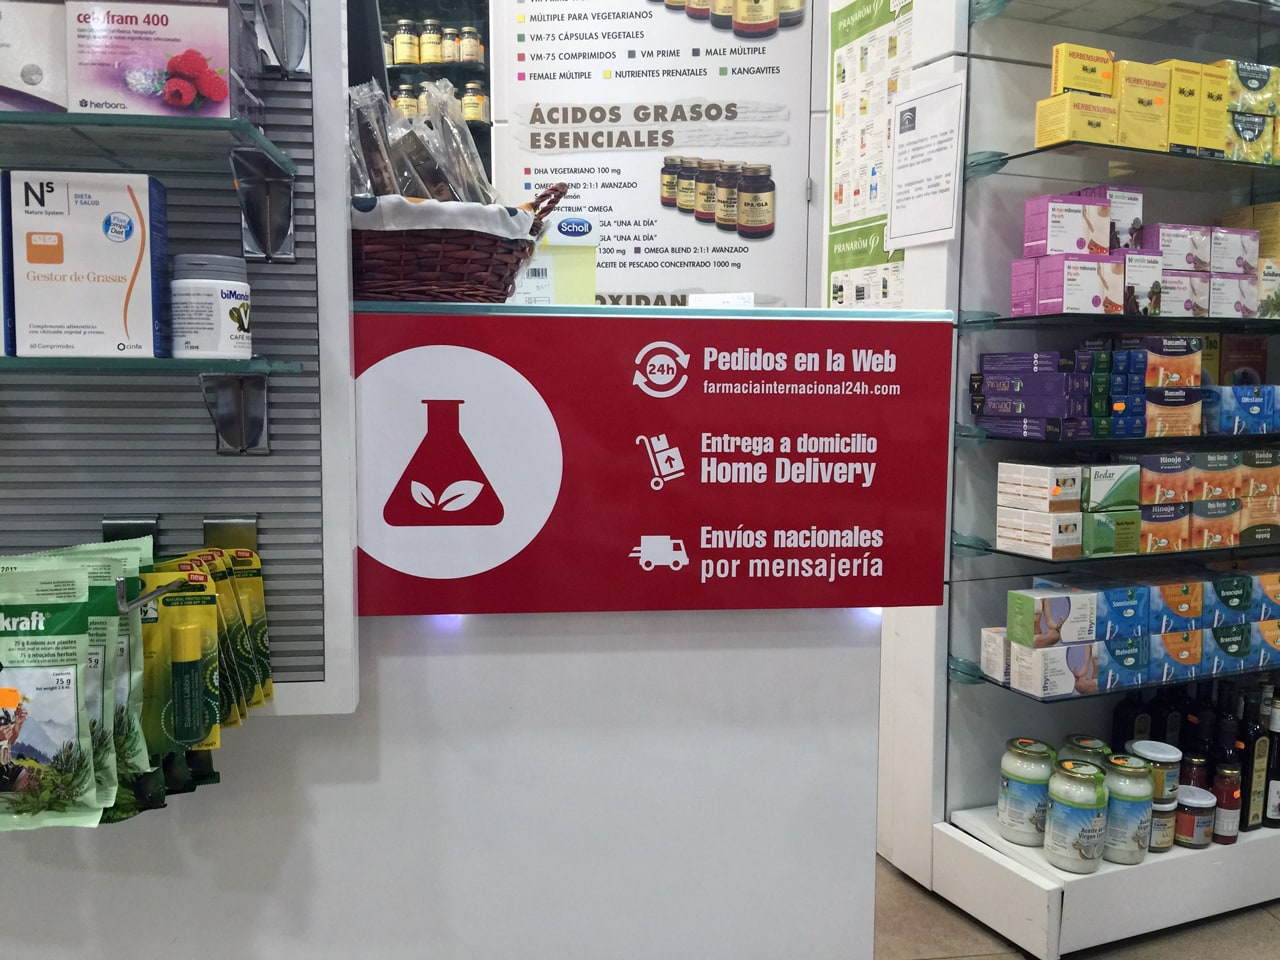 Signs and labels design for Farmacia Internacional